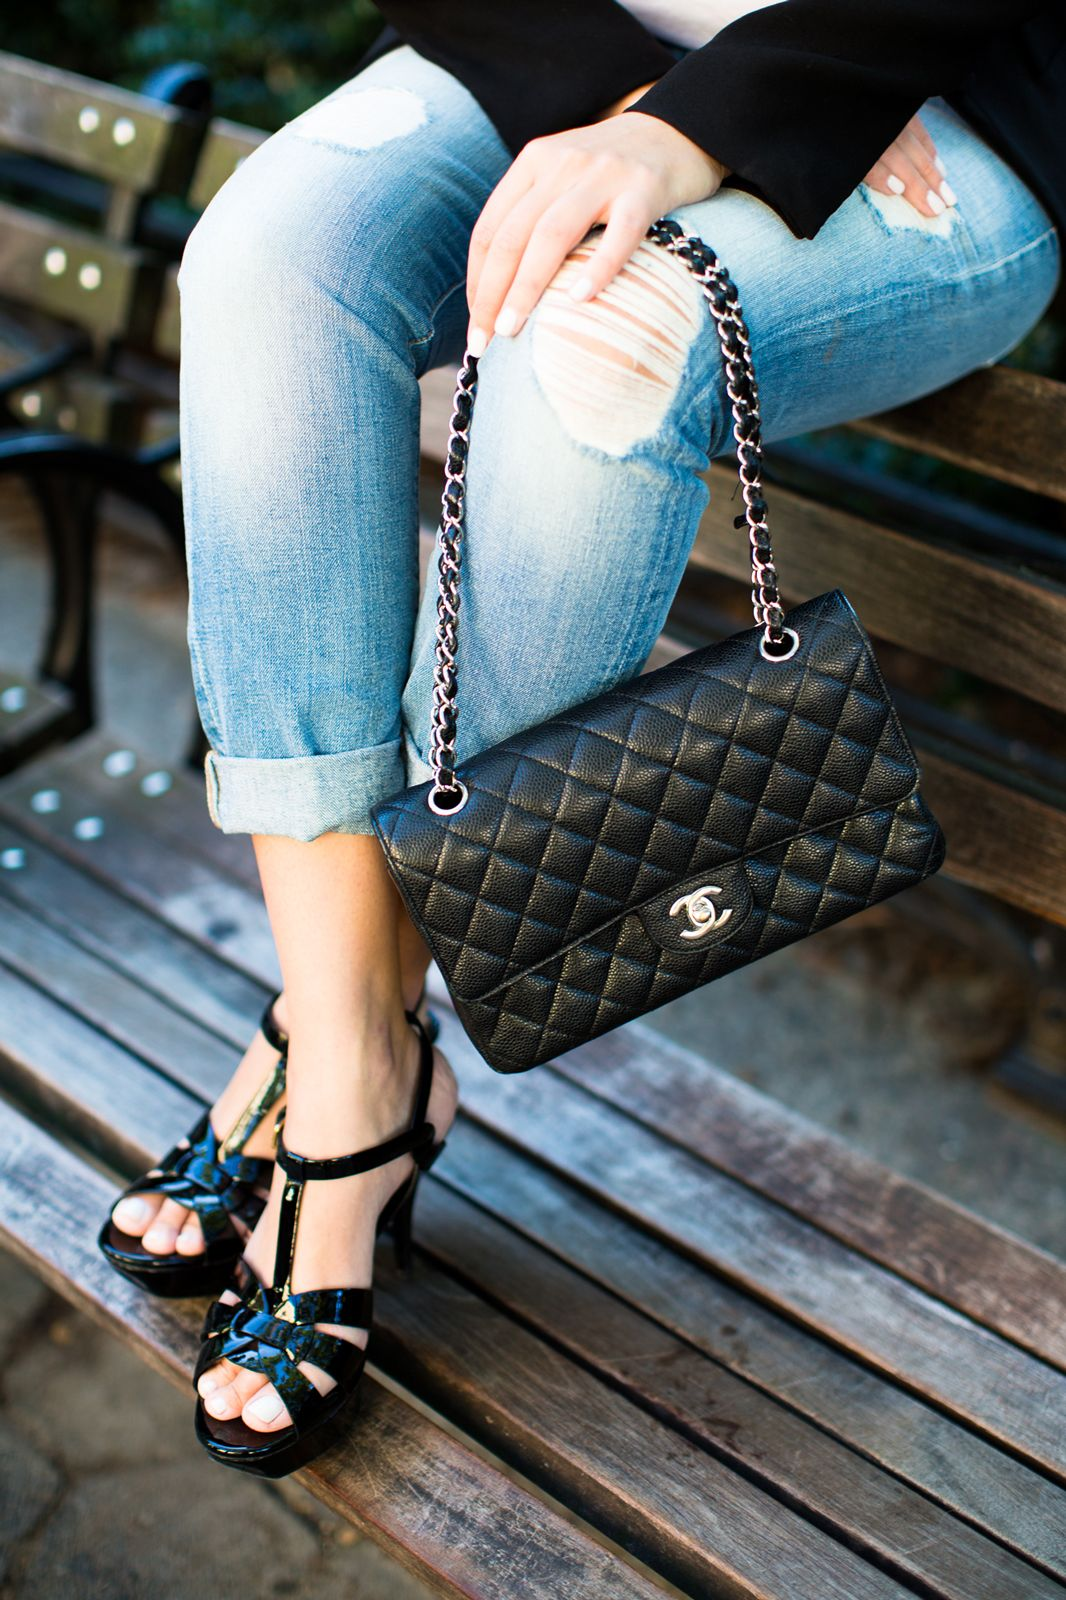 Chanel and jeans